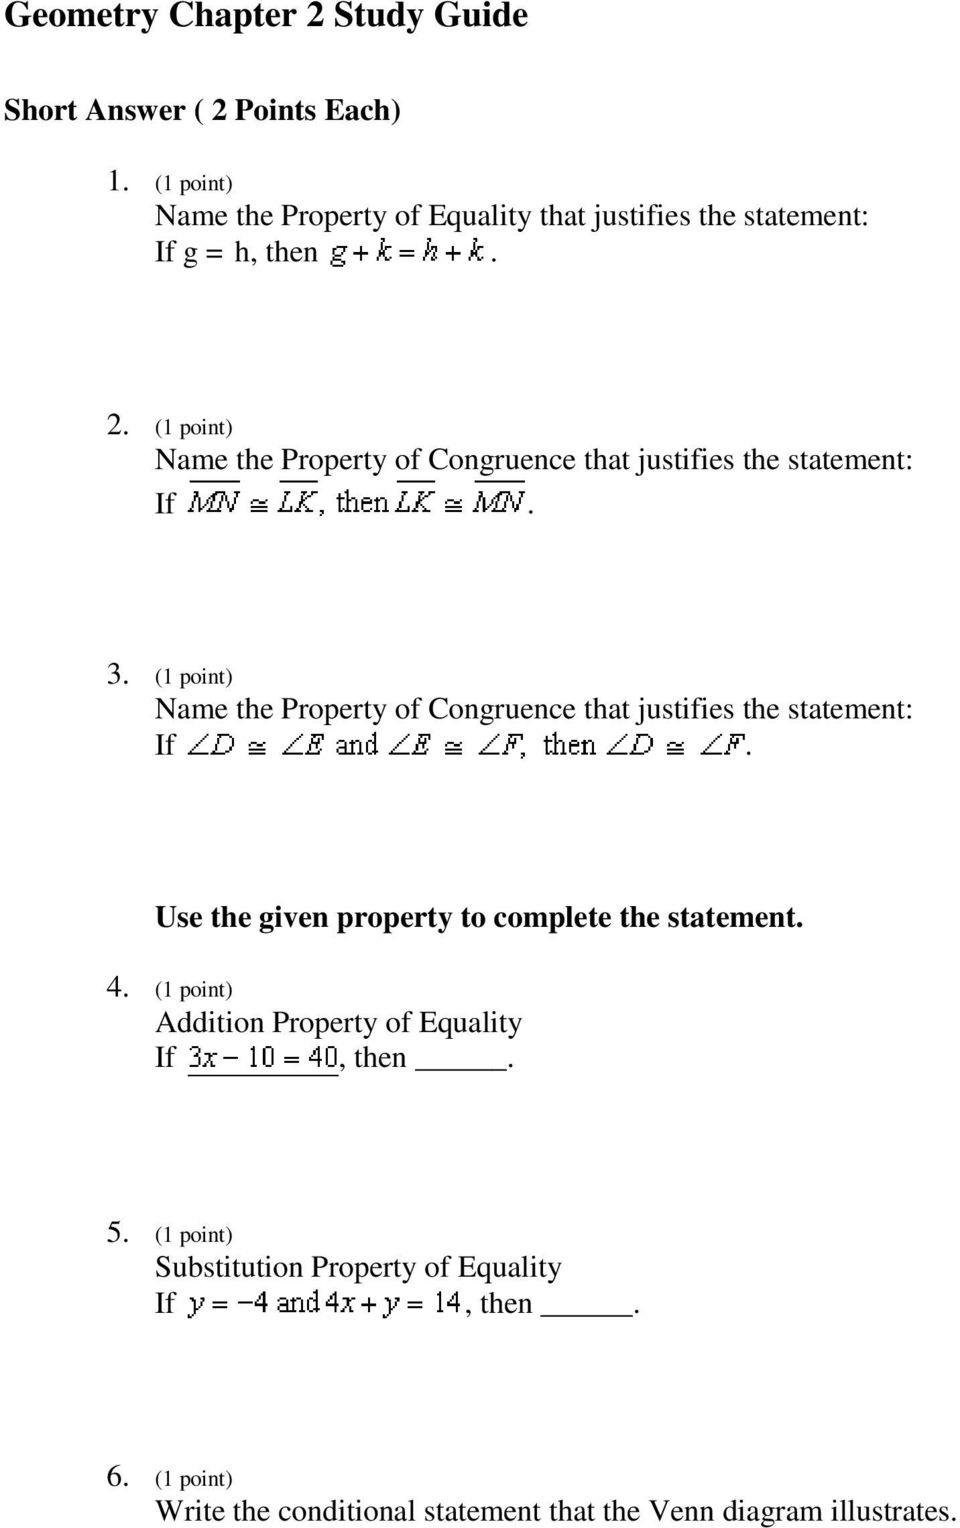 (1 point) Name the Property of Congruence that justifies the statement: If.